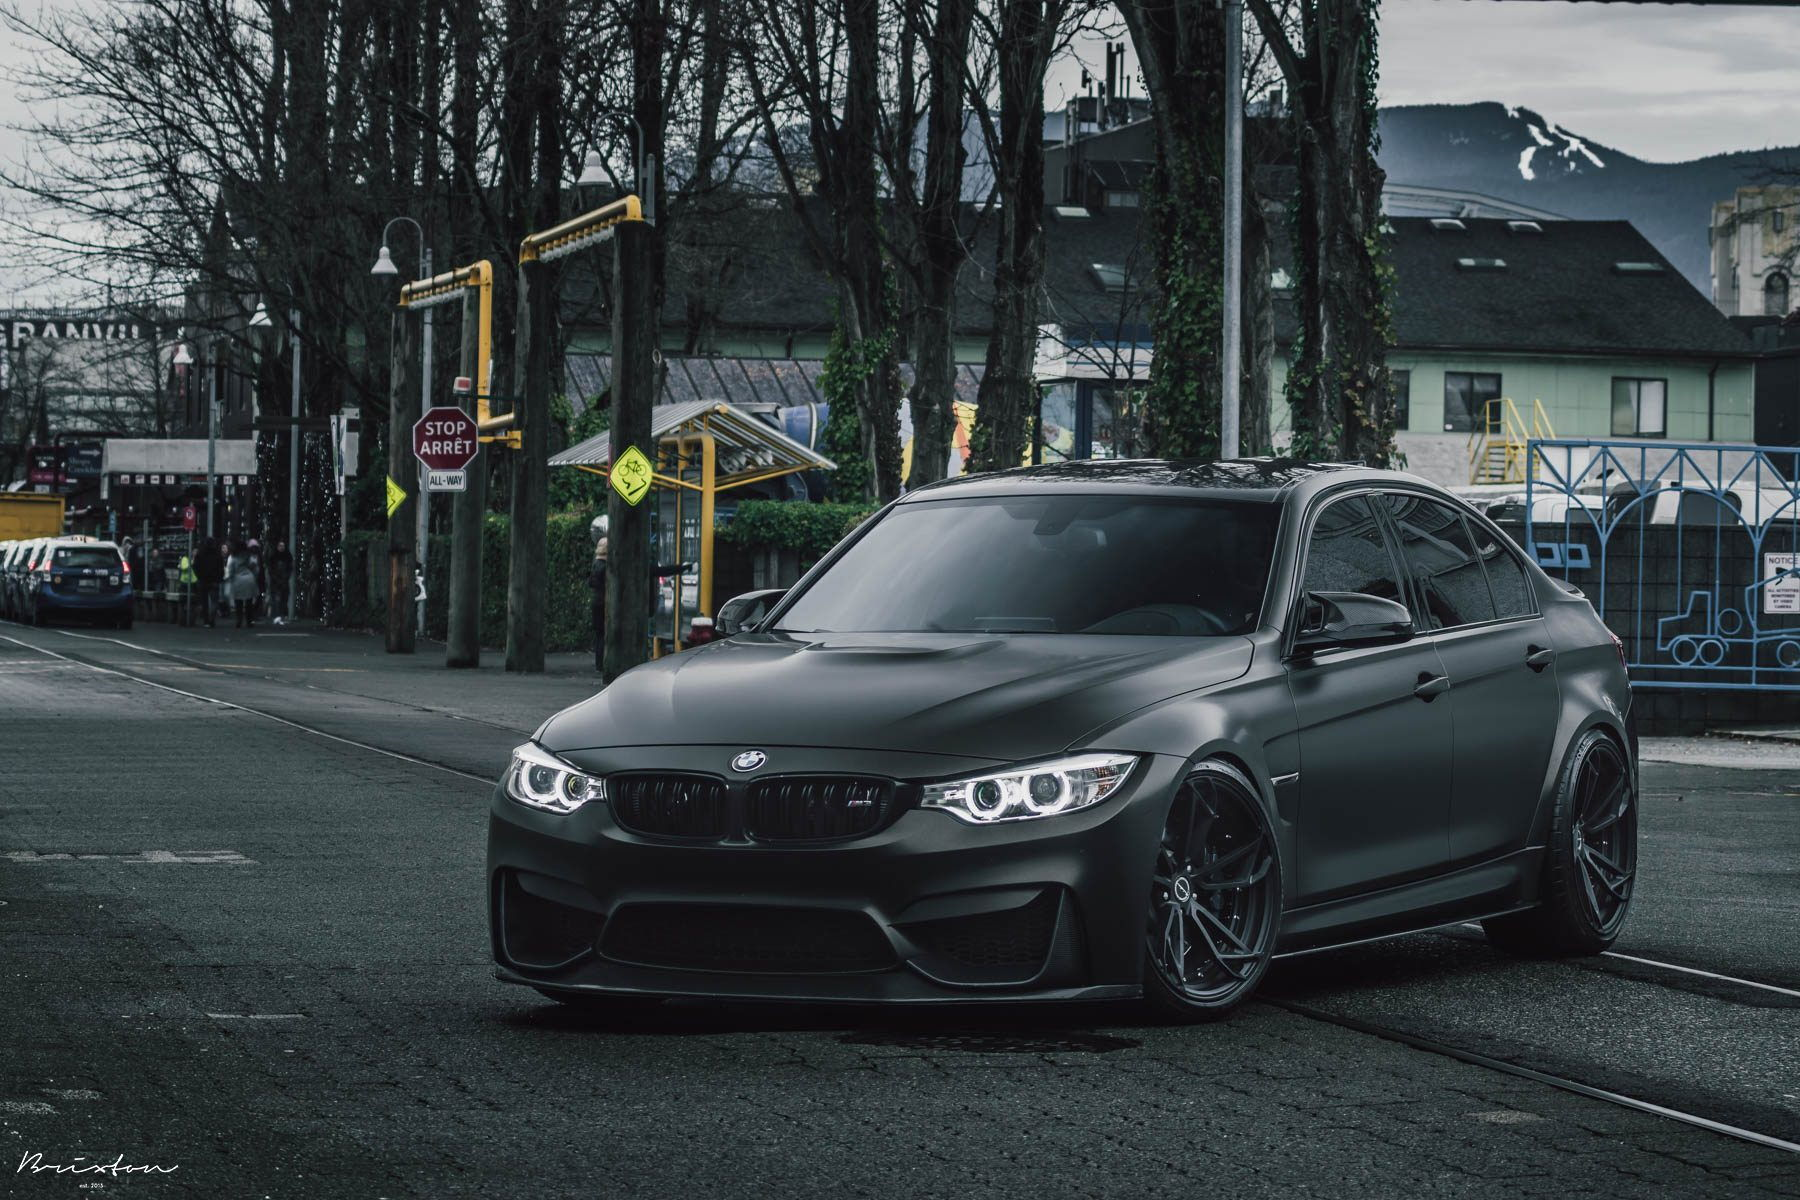 murdered out f80 m3 brixton pf1 6speedonline porsche. Black Bedroom Furniture Sets. Home Design Ideas